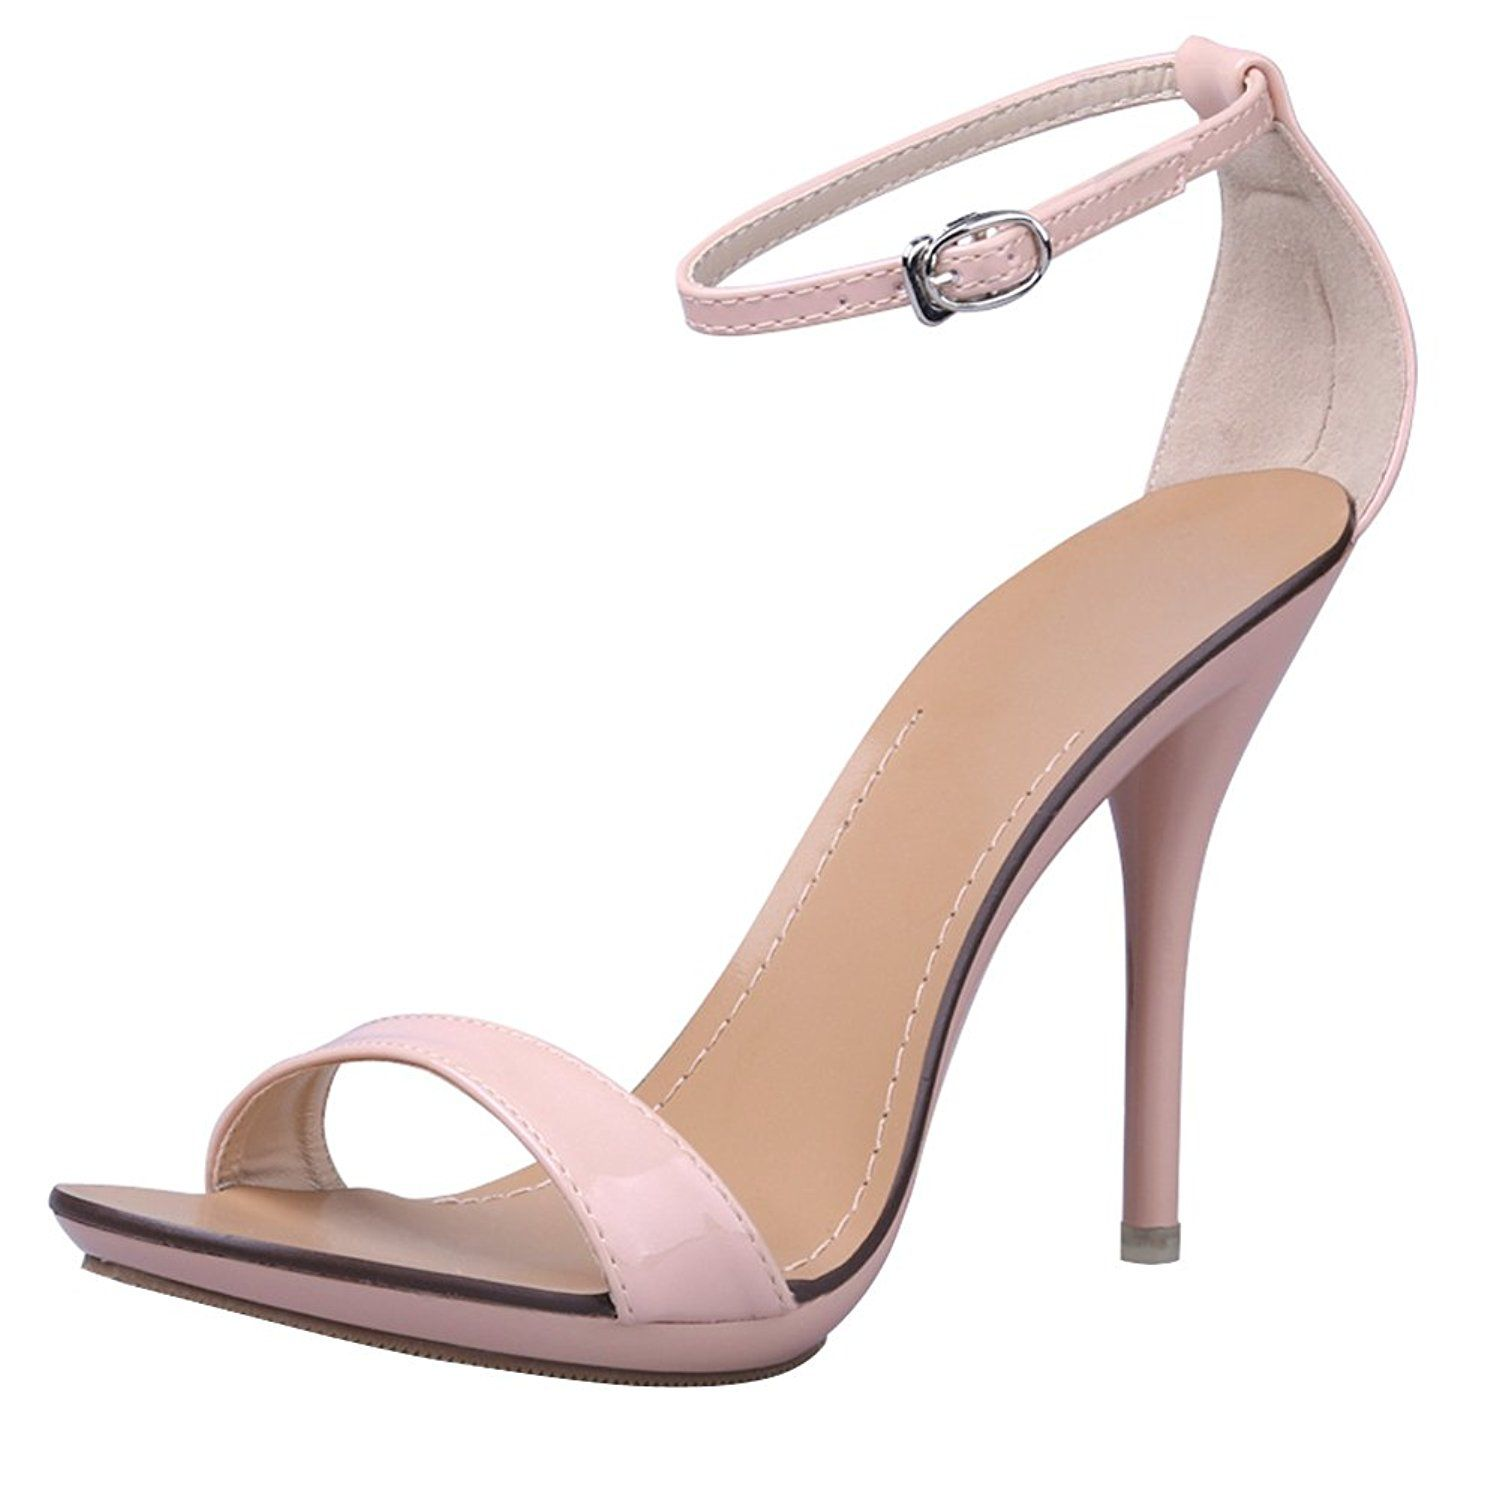 7f55e0774fb3 OCHENTA Women s Classic Dancing Stiletto High Heel Open Toe Ankle Strap  Sandals    Remarkable product available now.   Lace up sandals